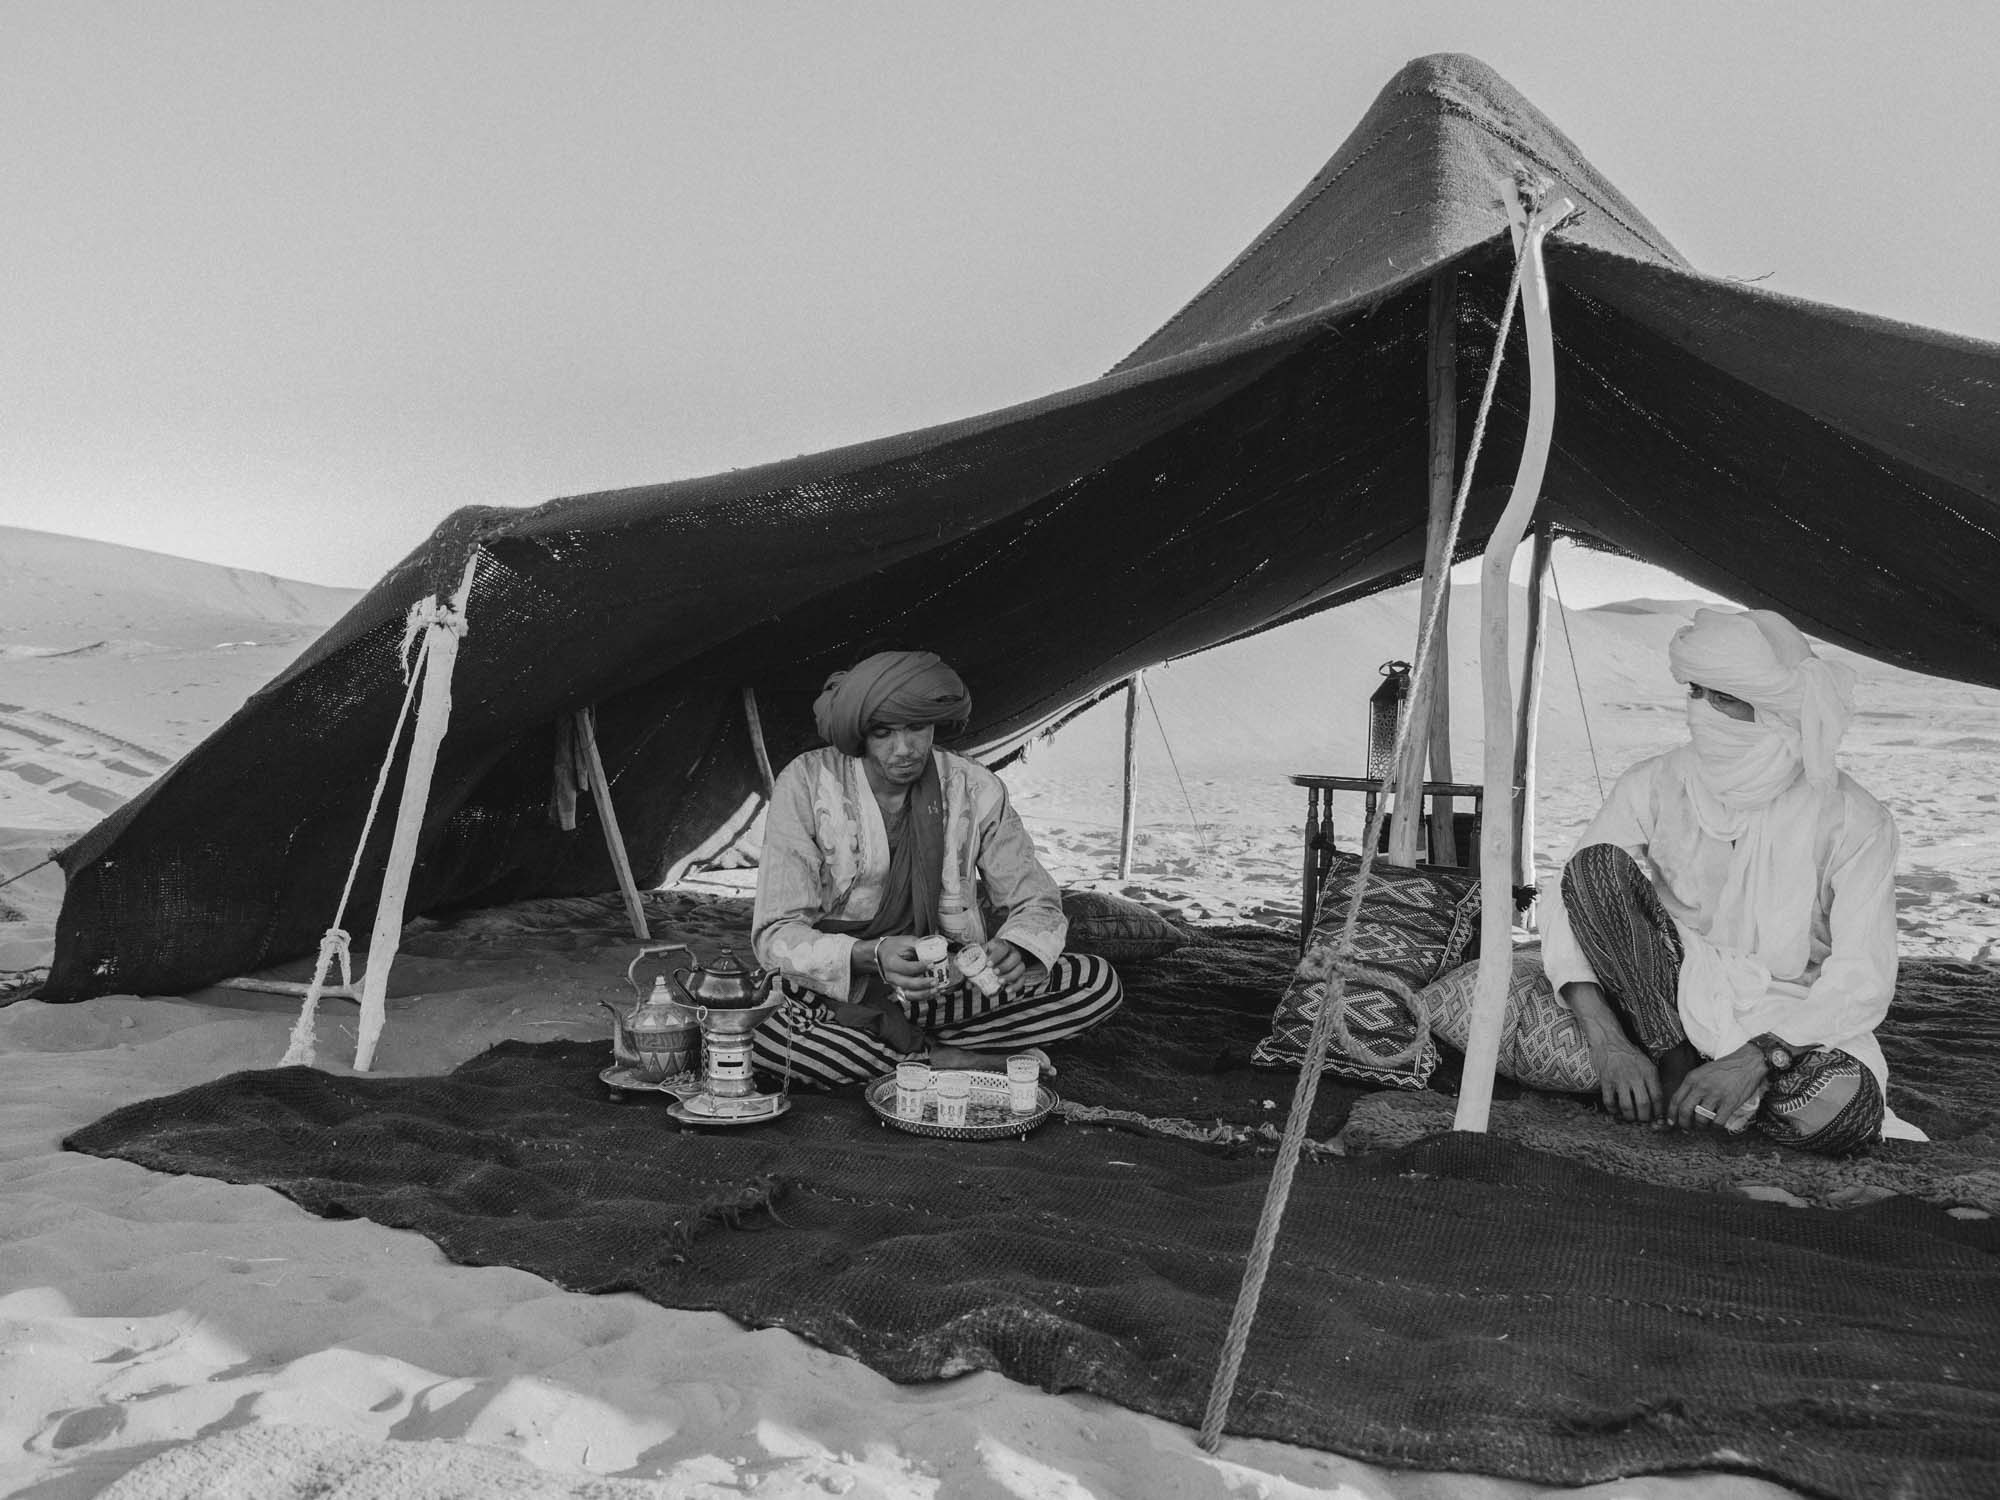 Berber Tour Guides Preparing Tea Under the Shade of Desert Camp